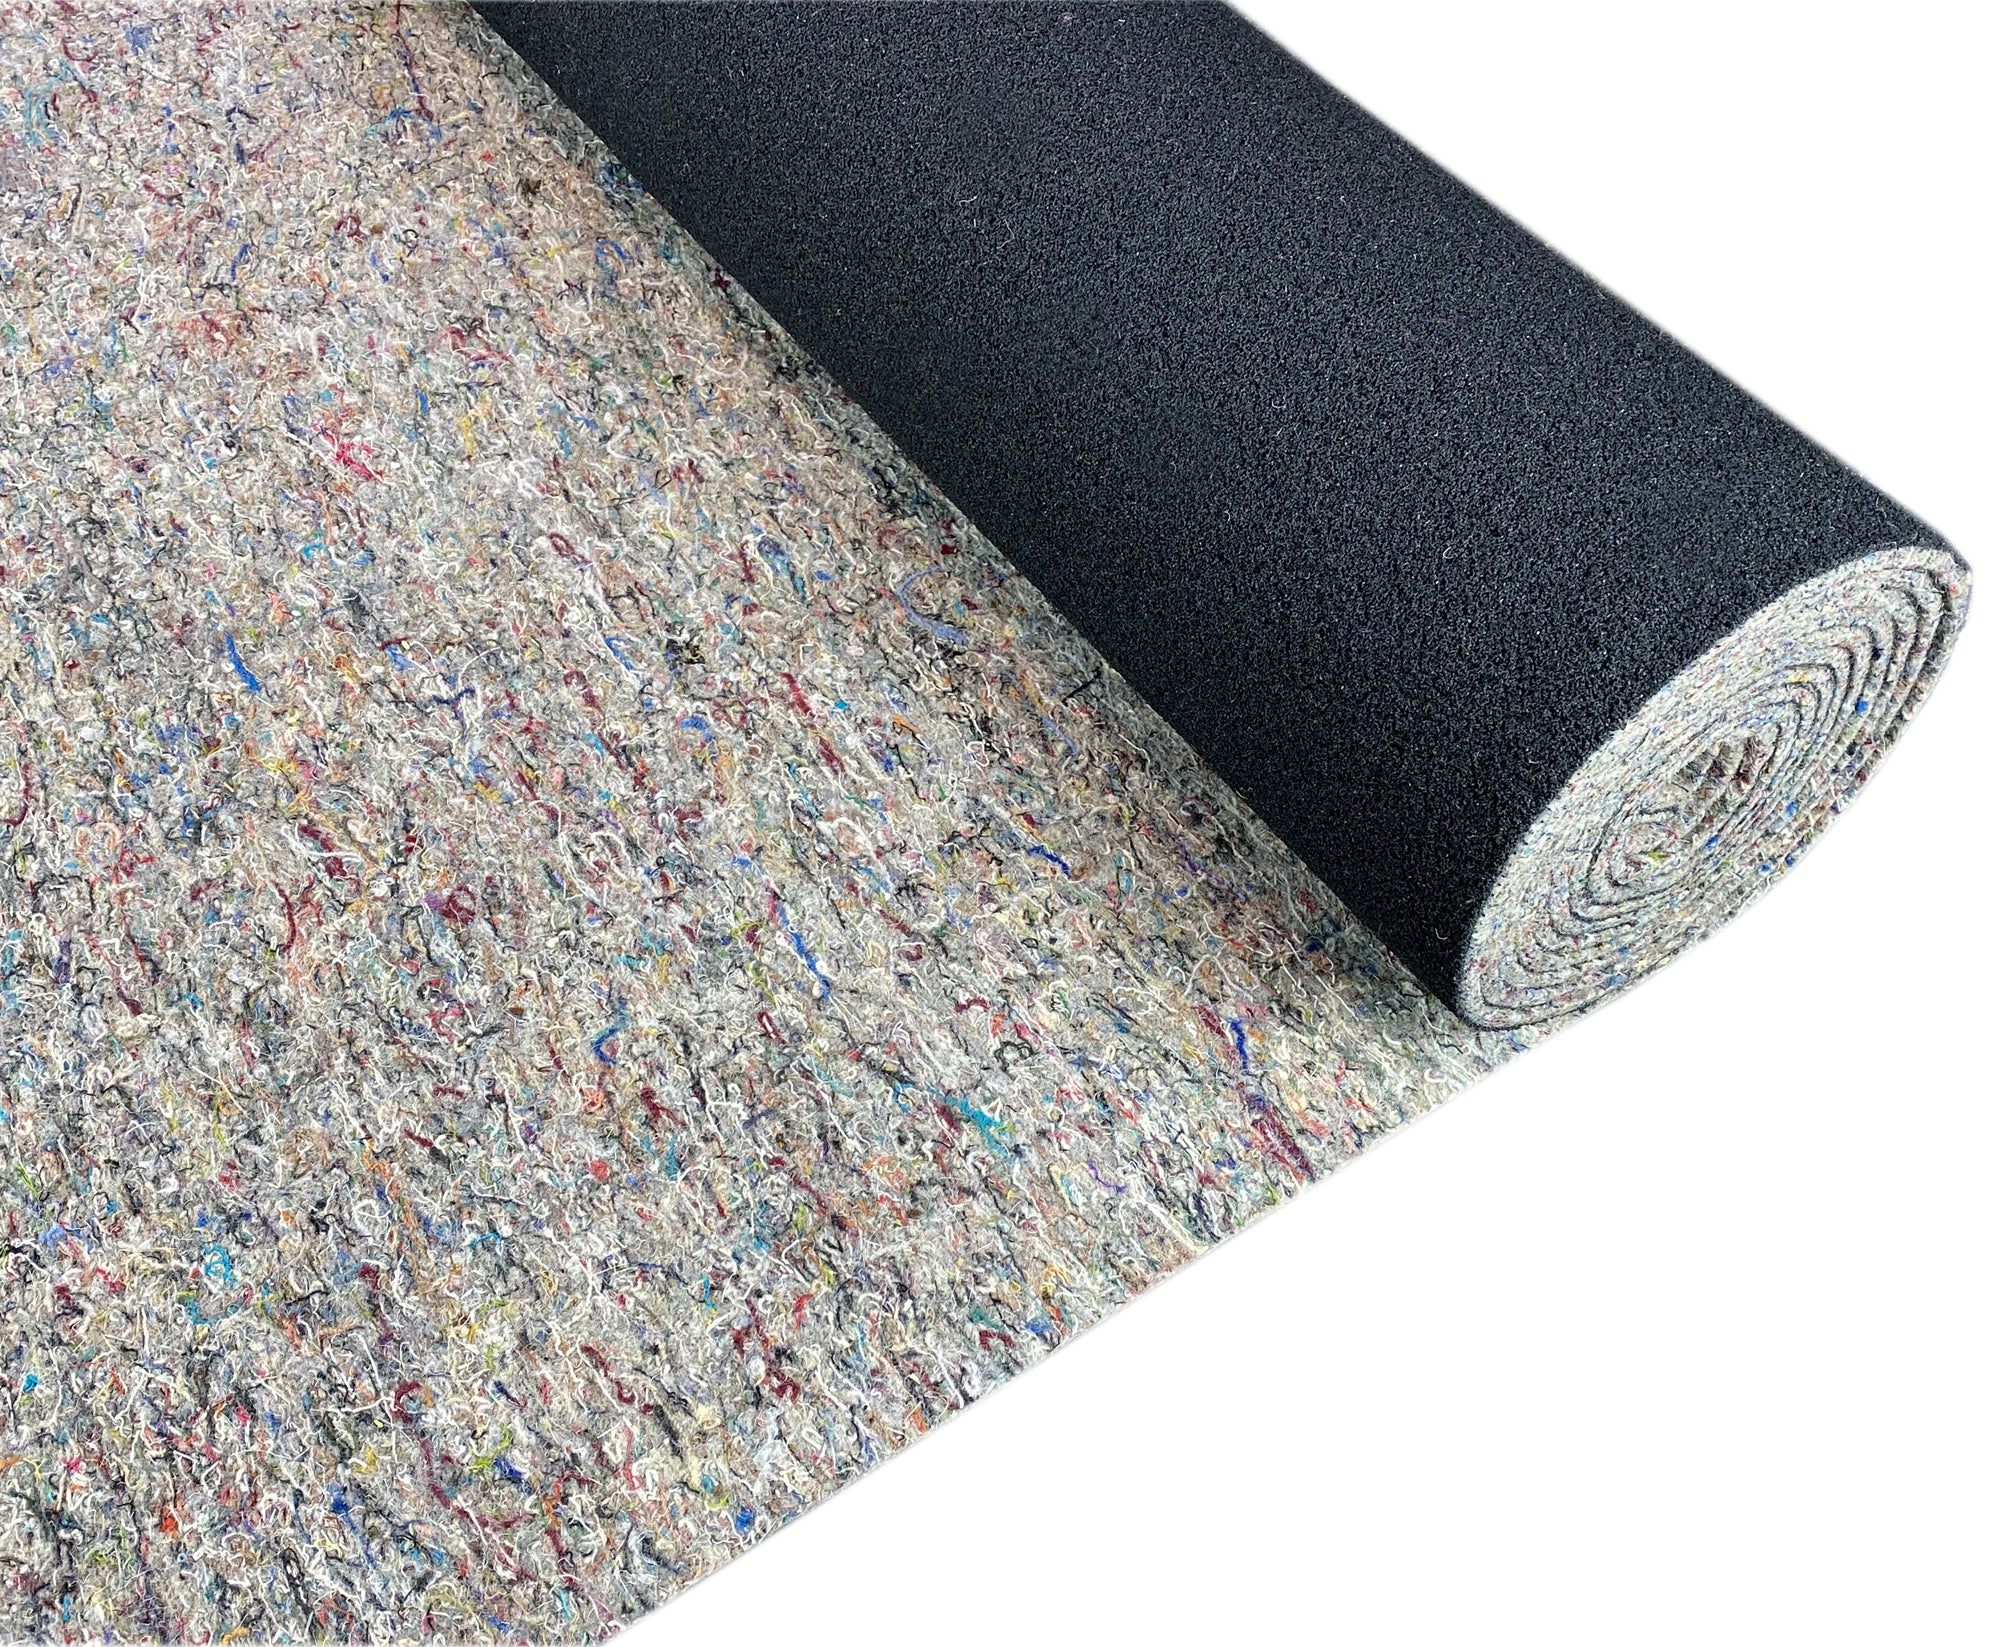 Super Velvet 12mm Luxury Carpet Underlay 6 99 Per M2 Online